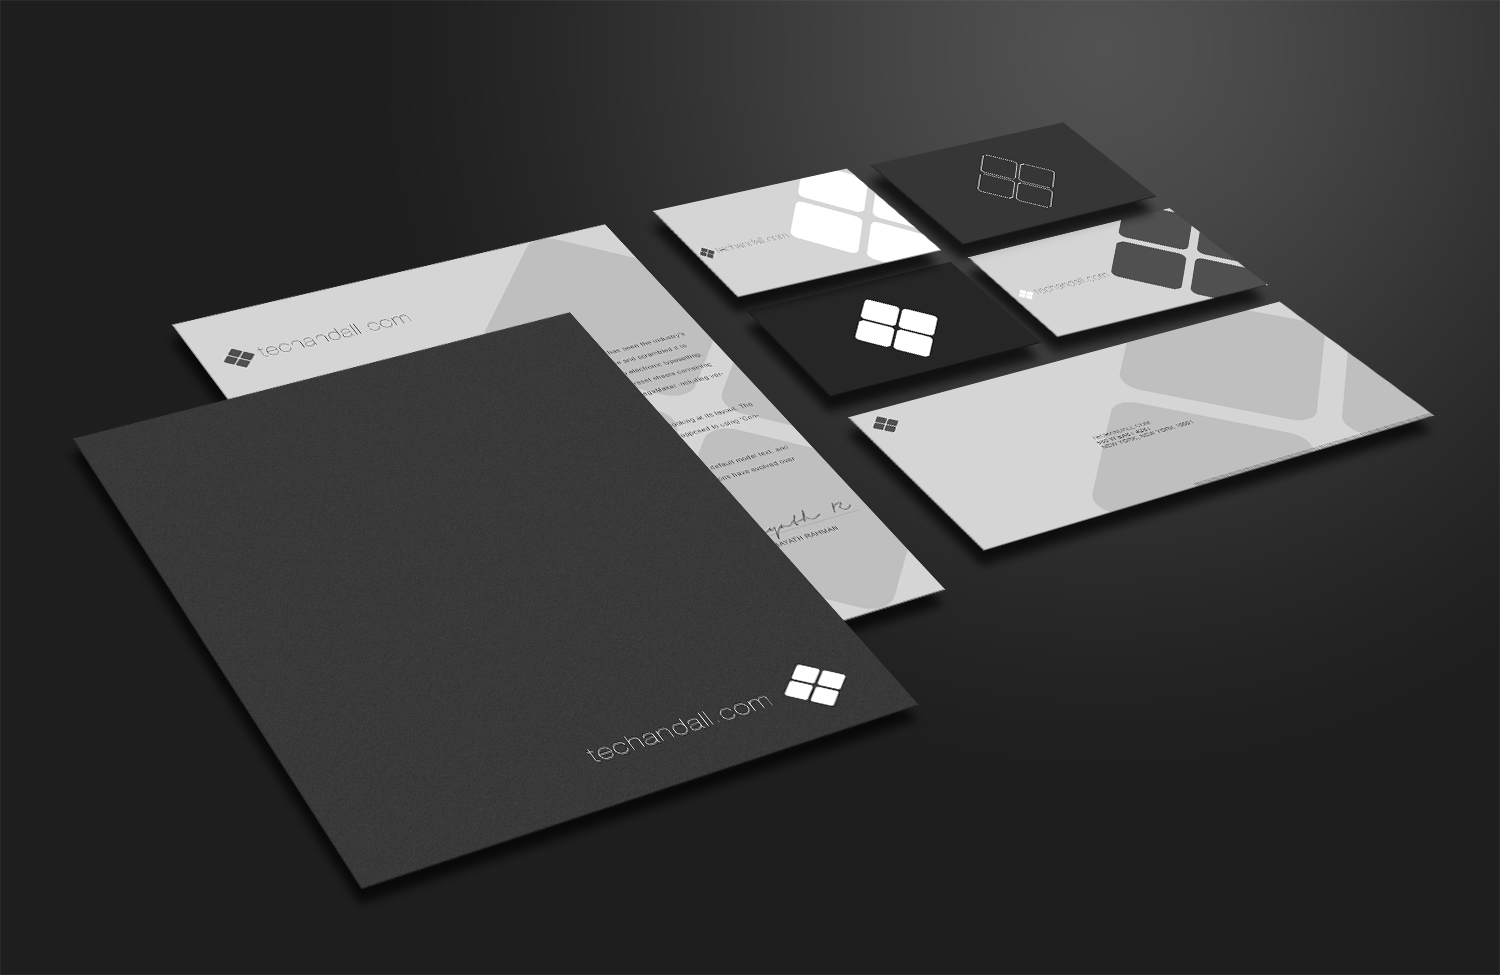 techandall_Stationery_Mock_Up_Collection_Xi.jpg